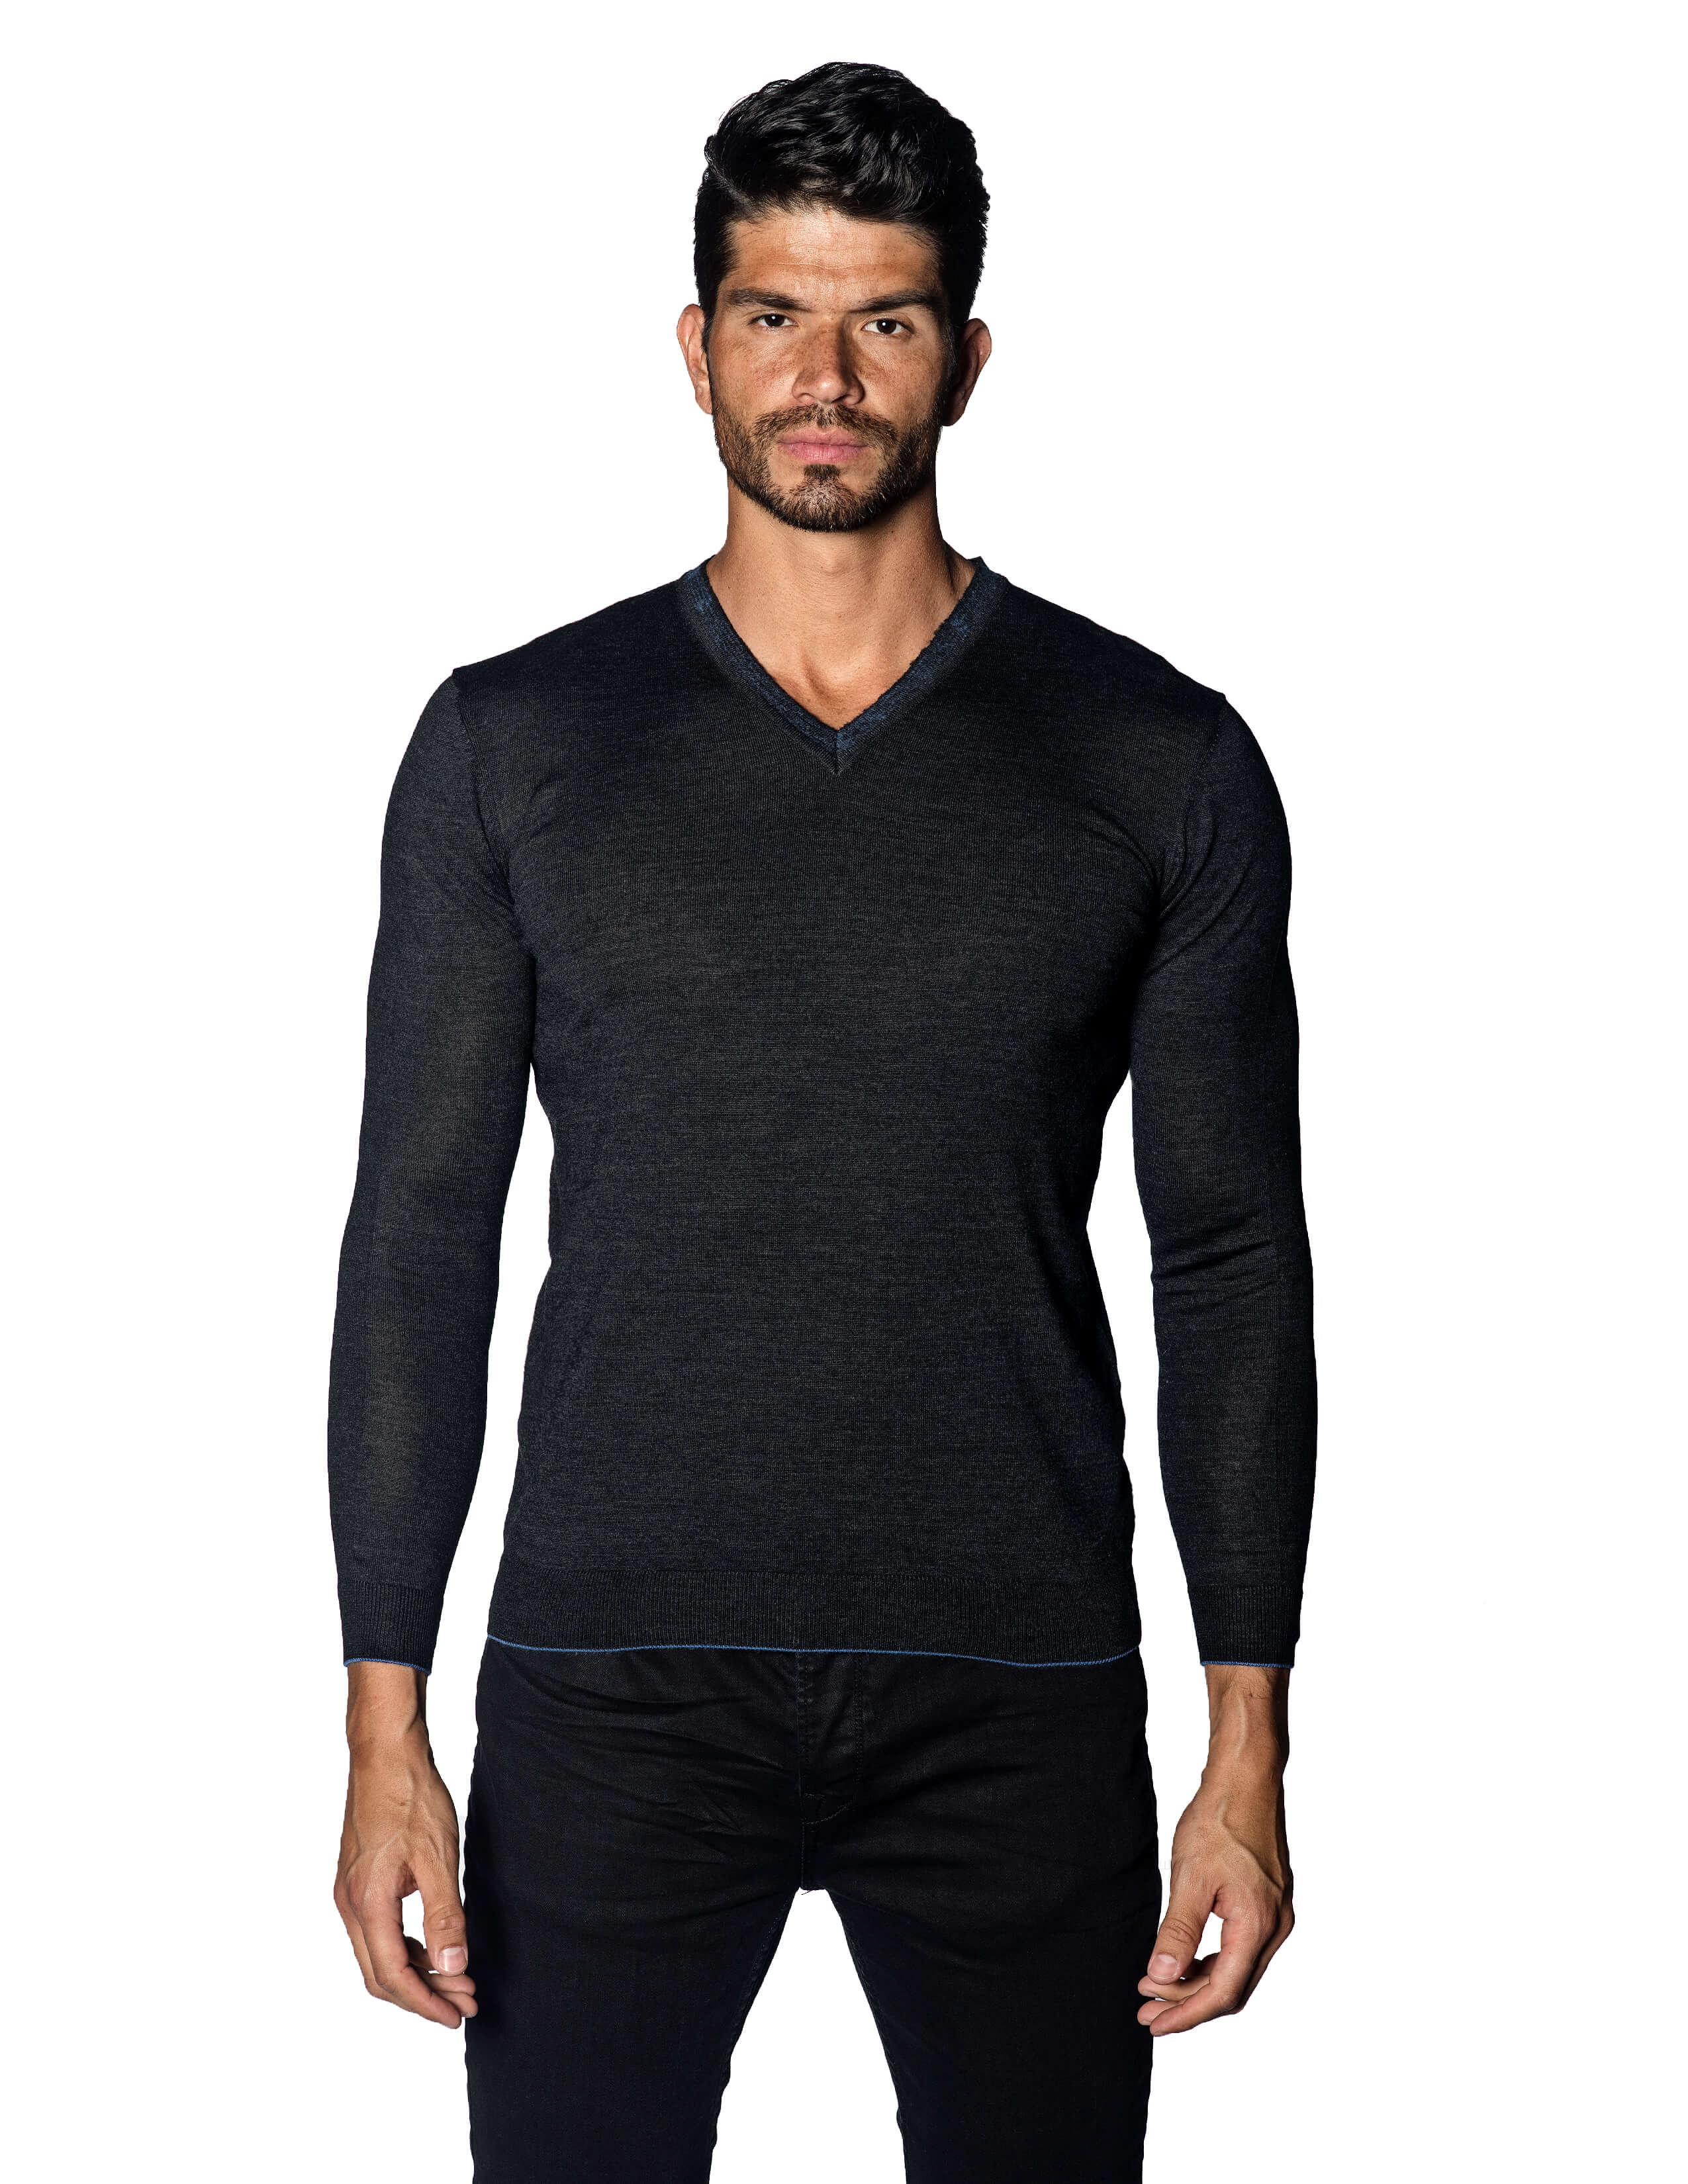 Charcoal Sweater V-Neck with Piping for Men 1895-CH - Jared Lang